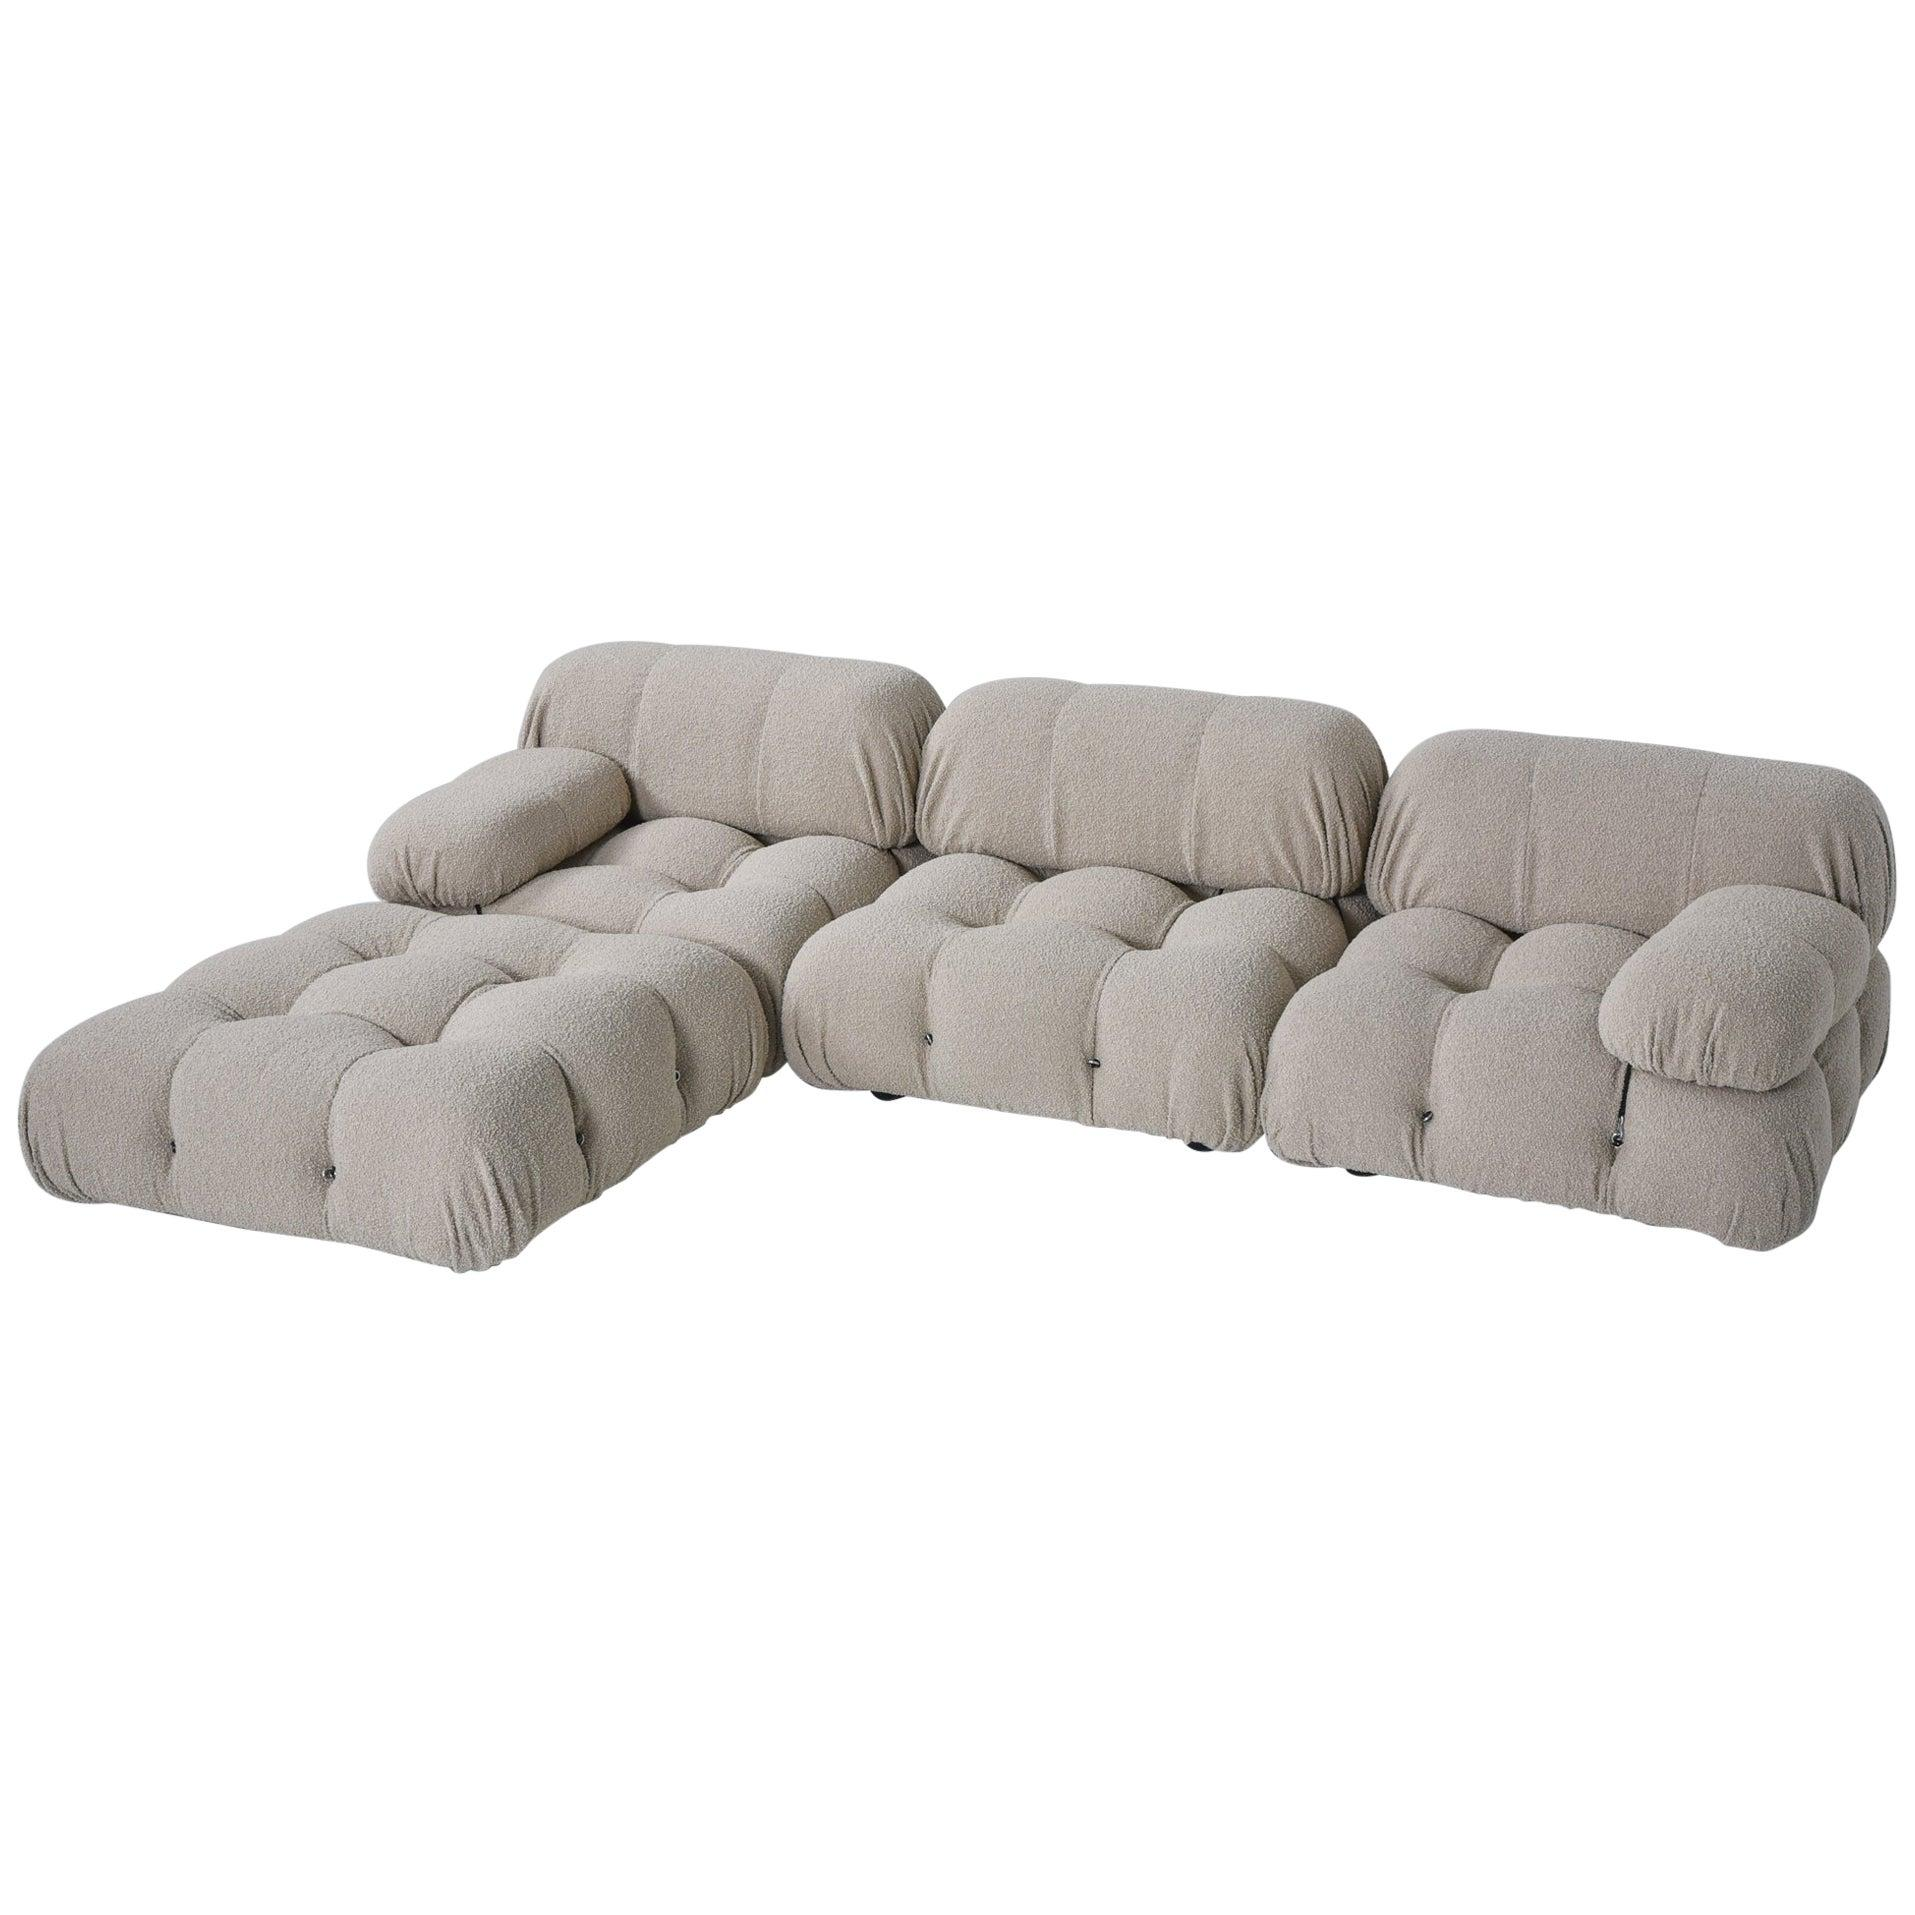 Camaleonda Vintage Original Sectional Sofa in Taupe Boucle by Mario Bellini